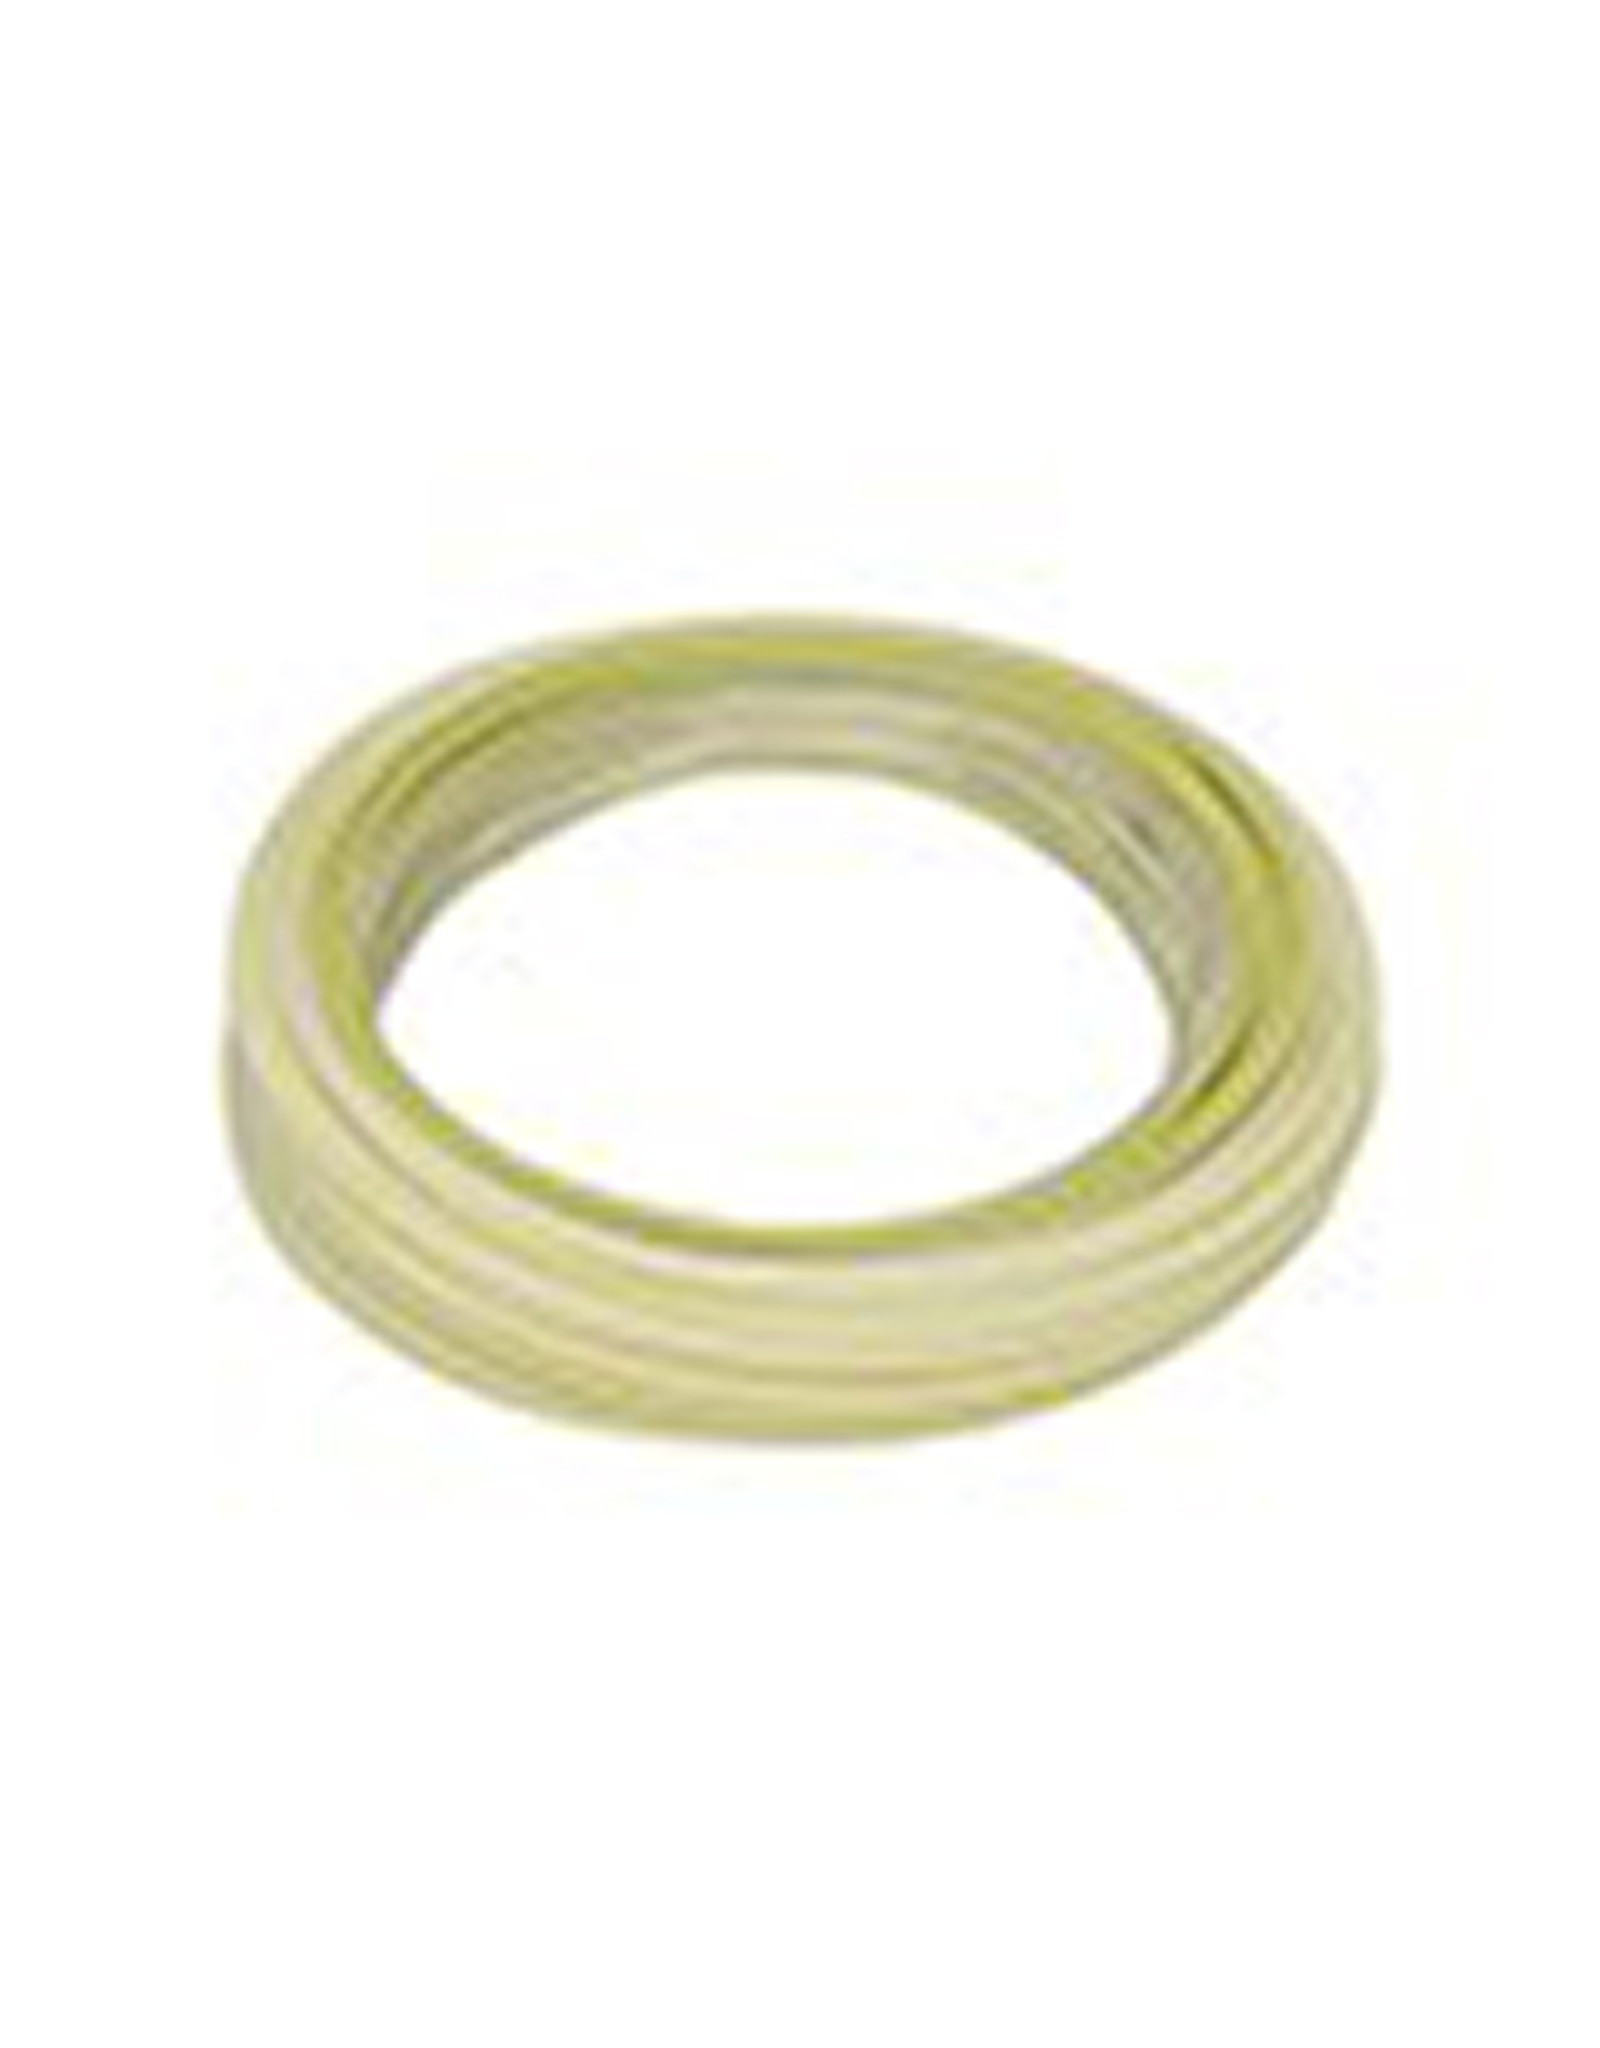 RIO Products Tropical OutBound Short F/I (10ft Clear Intermediate Tip)